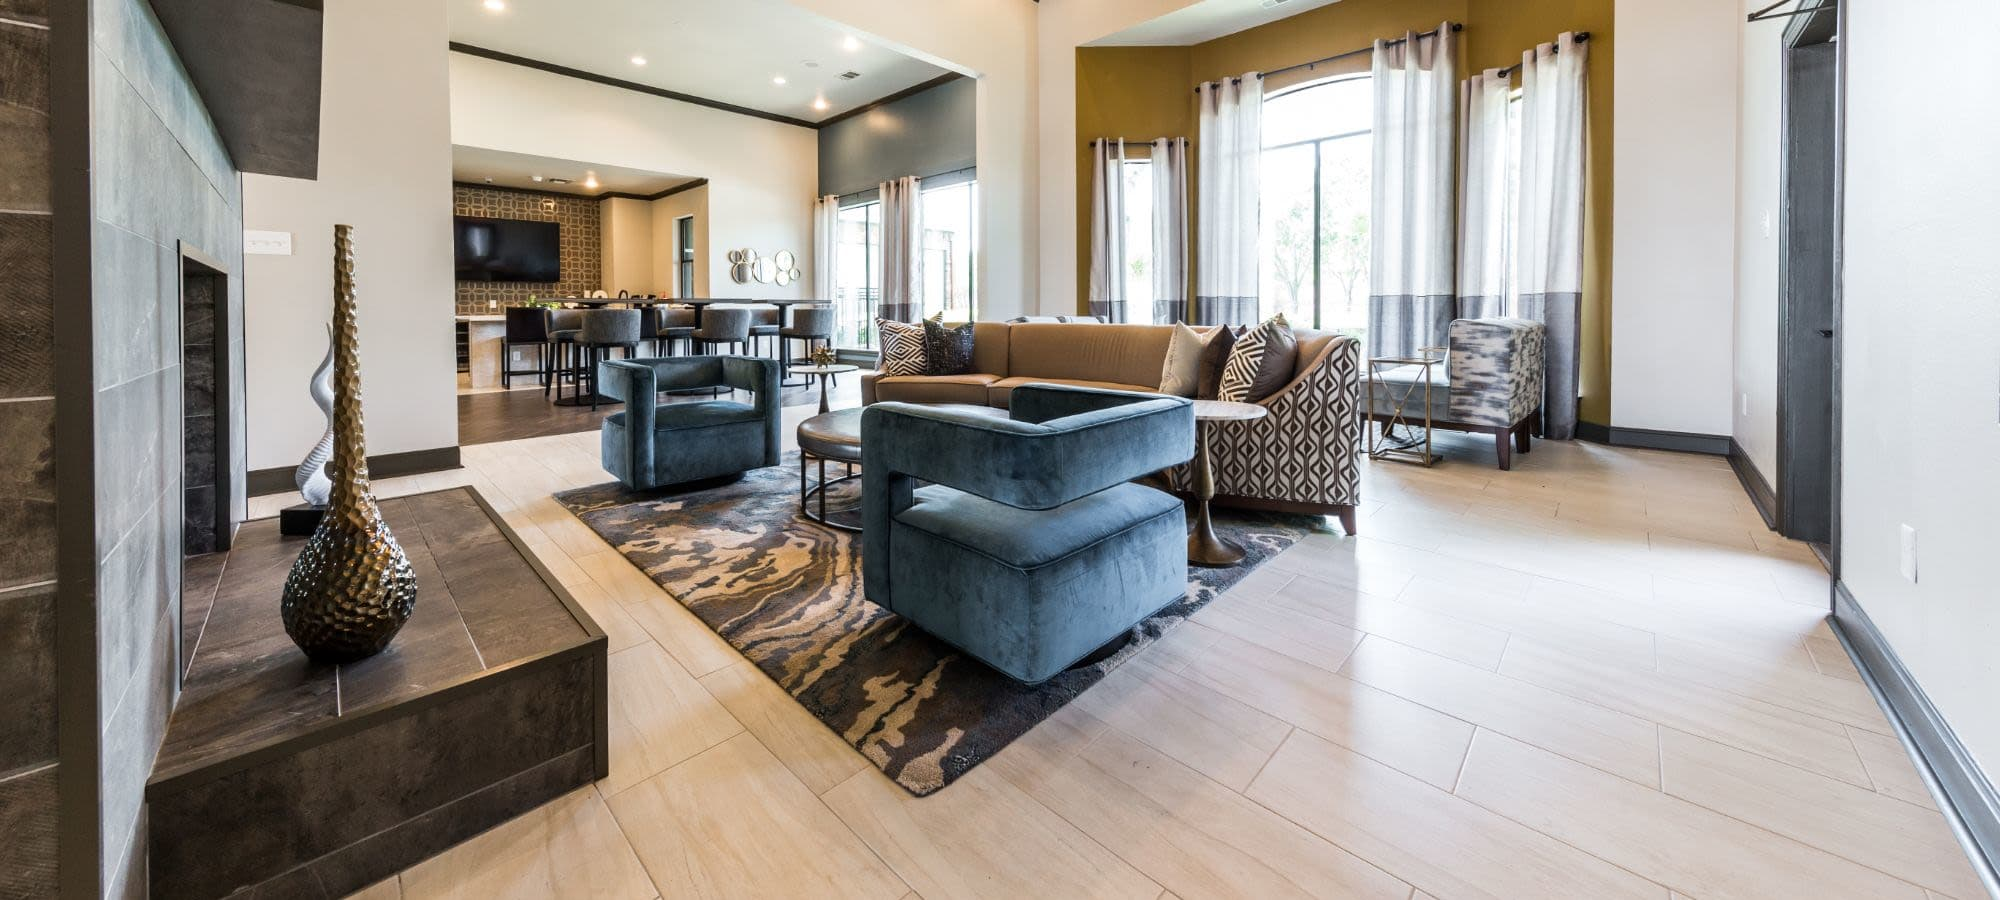 Virtual tours of Marquis at Stonebriar in Frisco, Texas